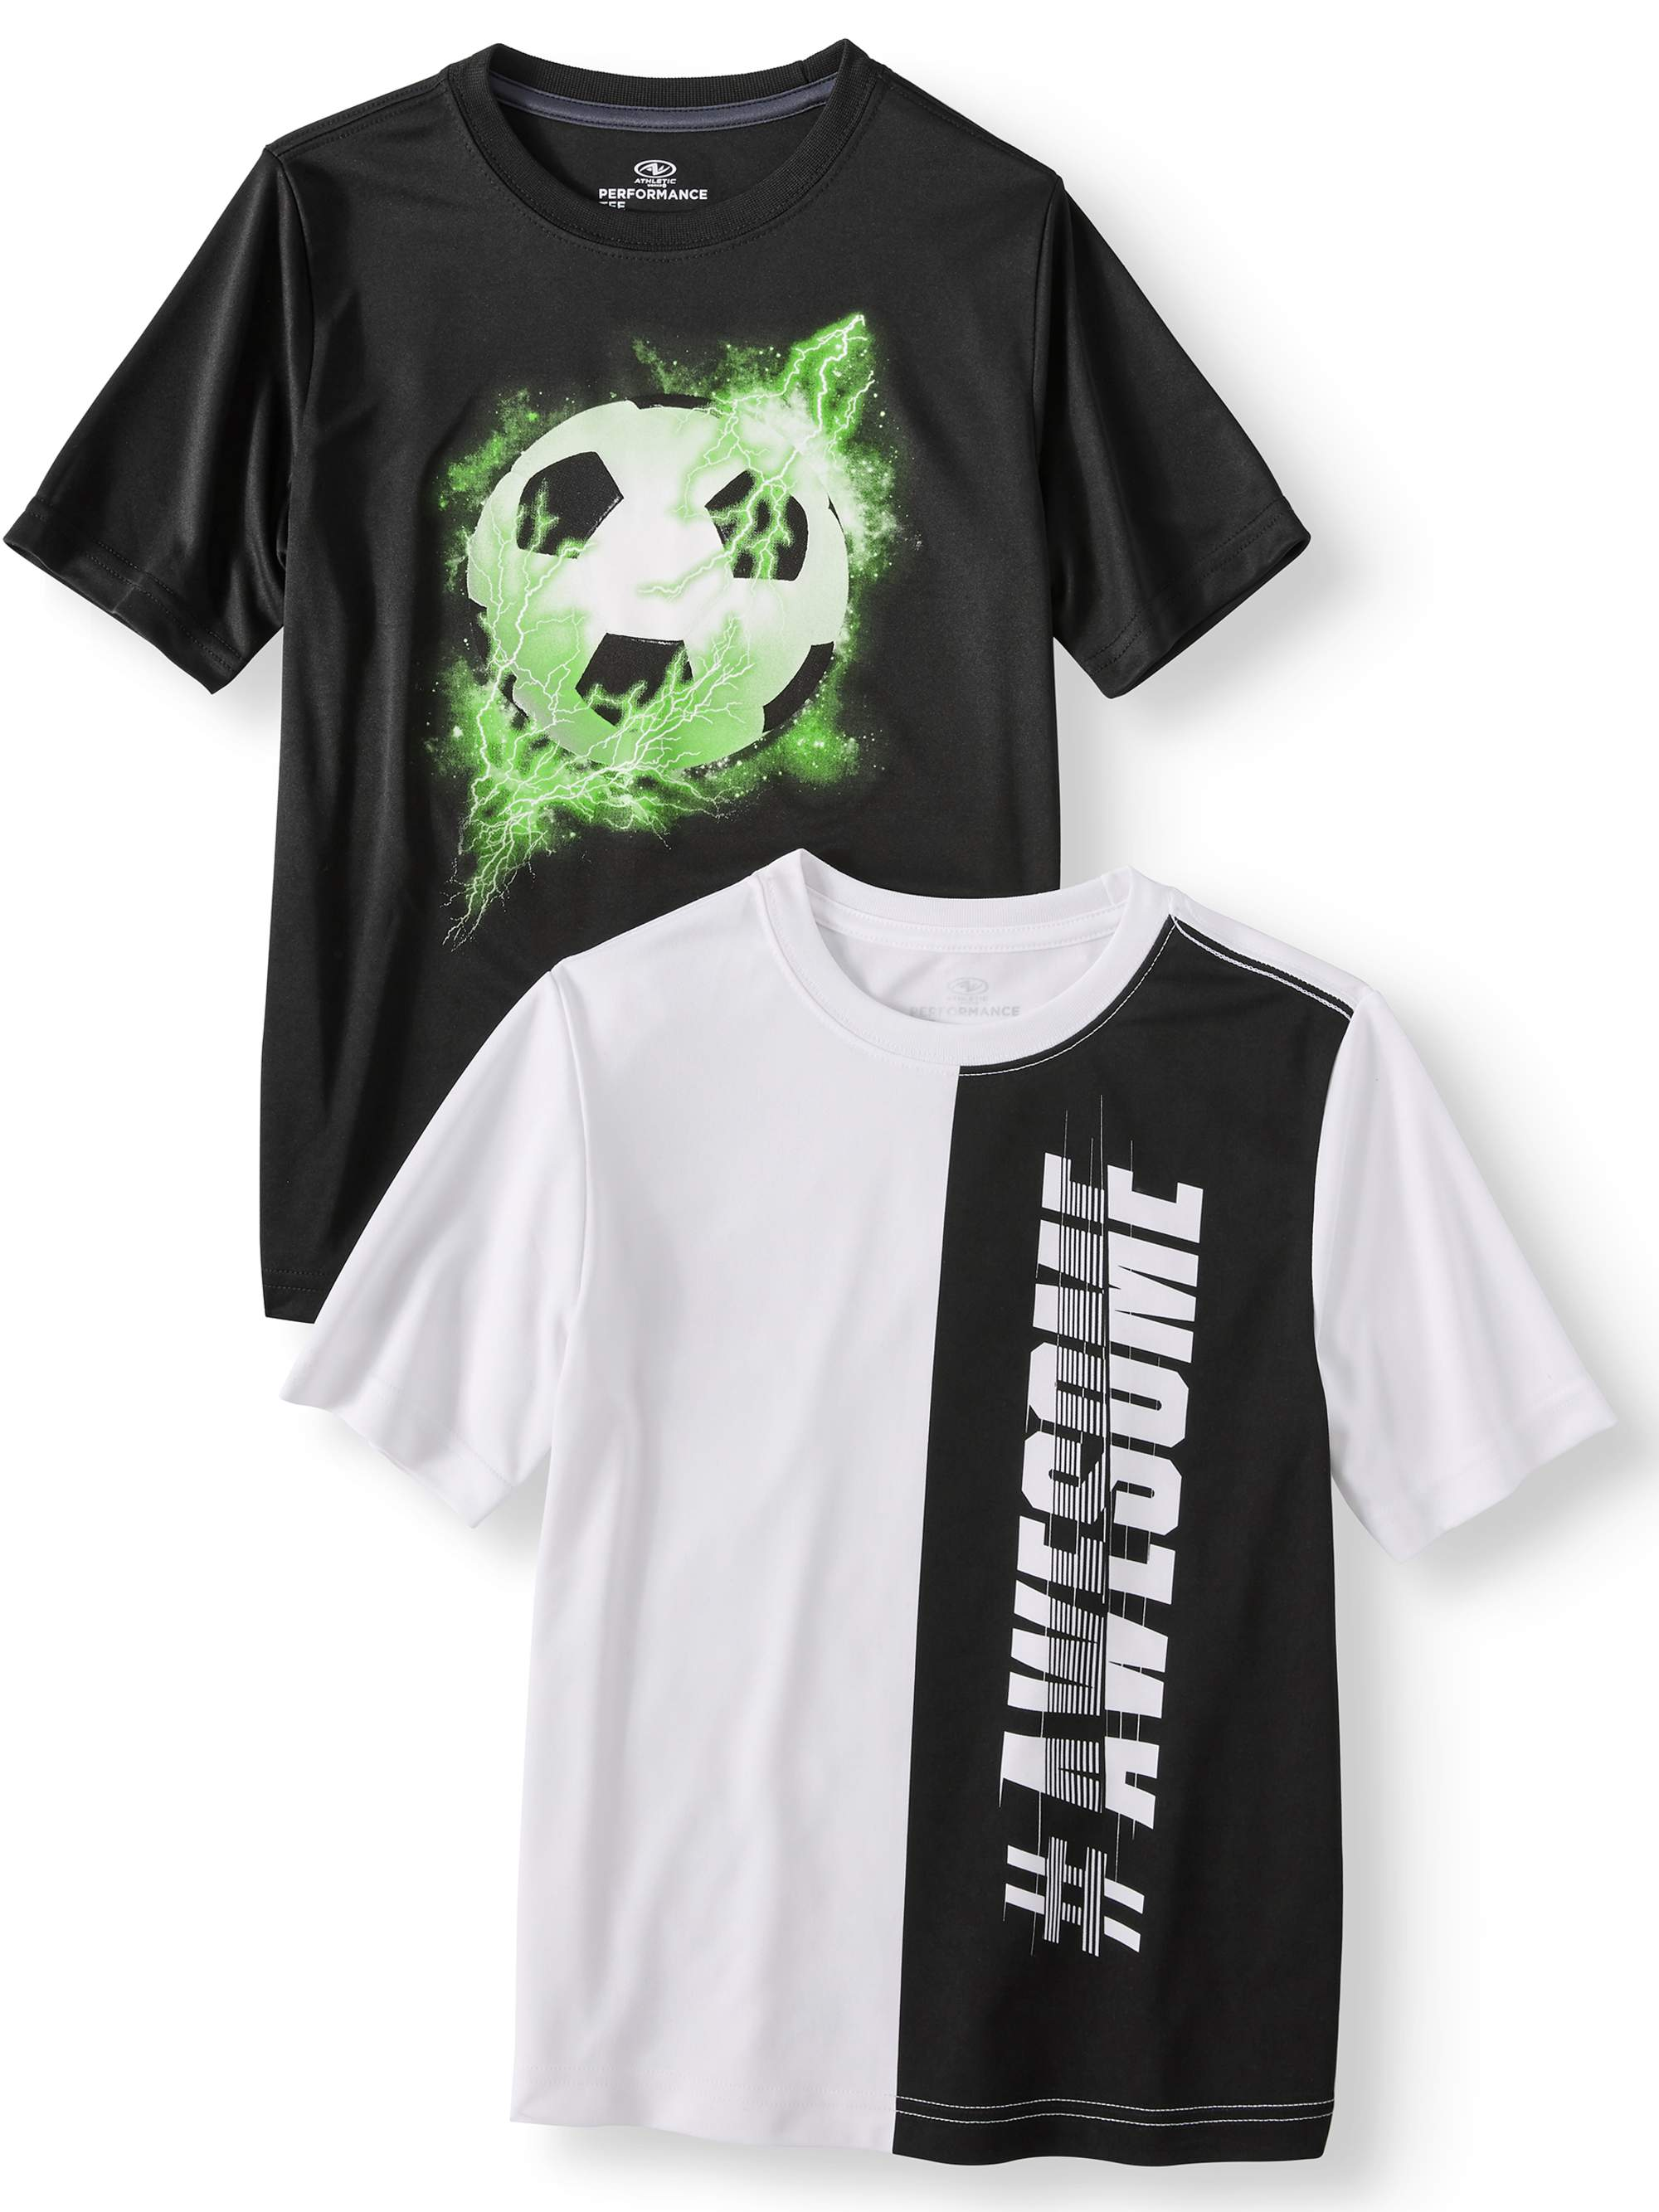 Short Sleeve Graphic Performance Tee, 2-Pack Set Value Bundle (Little Boys & Big Boys)